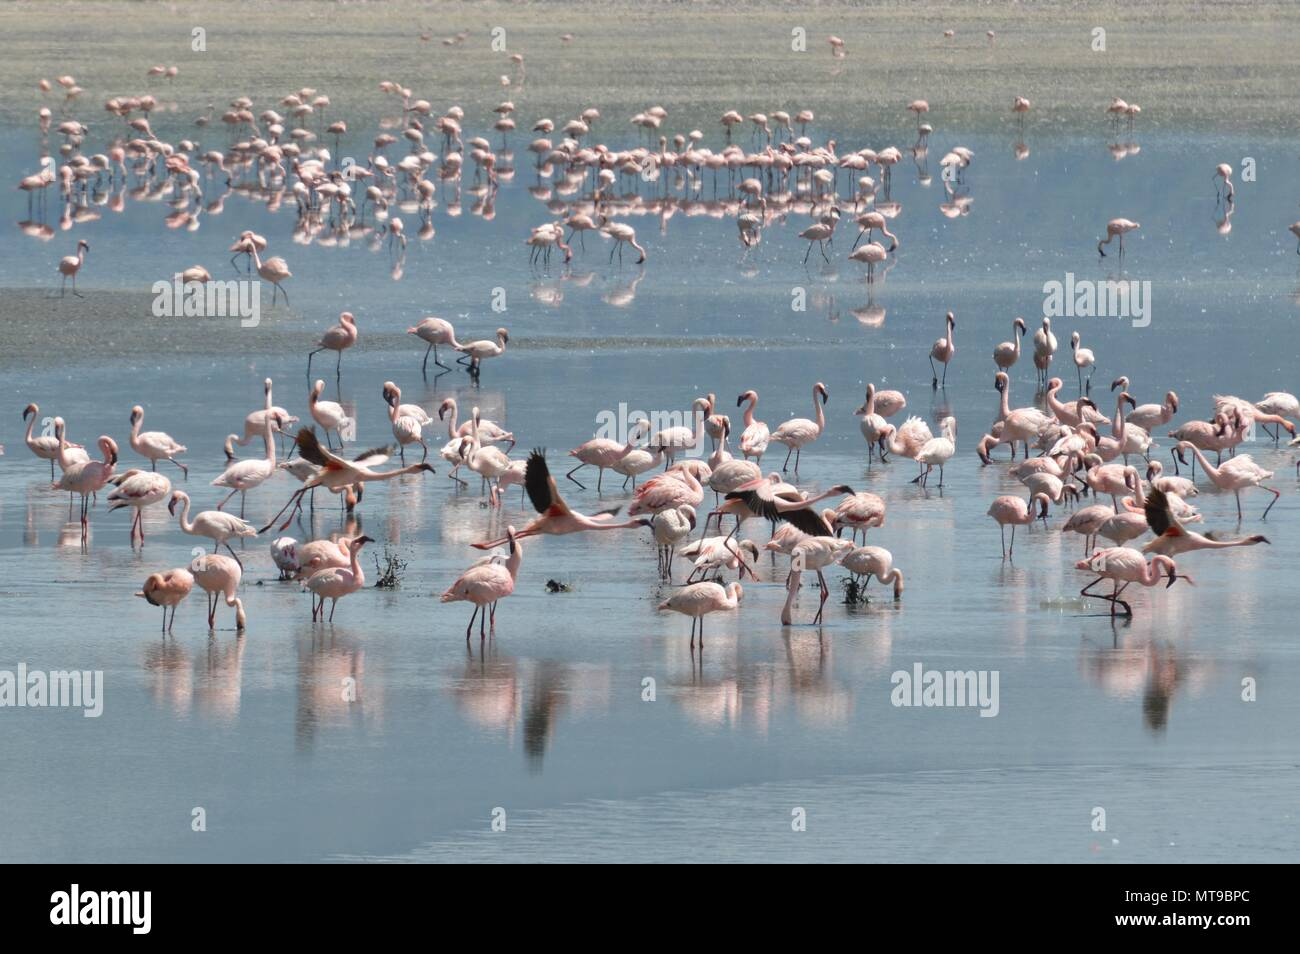 Flamingos basking in lake Manyara - Stock Image